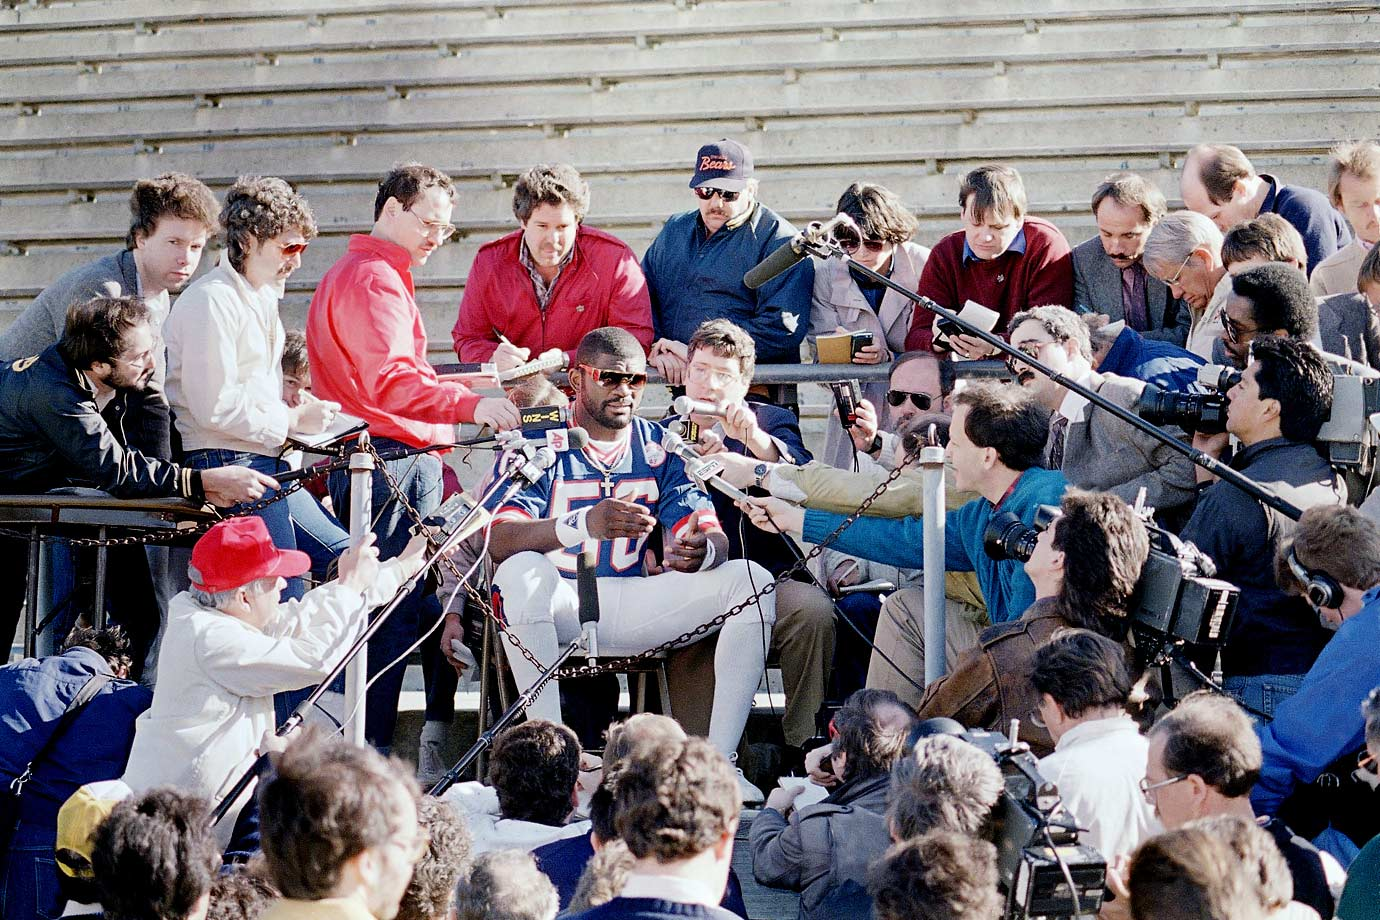 Lawrence Taylor, the league leader in sacks (20.5), talks to reporters during Super Bowl XXI Media Day.  The Giants defeated the Broncos 39-20.